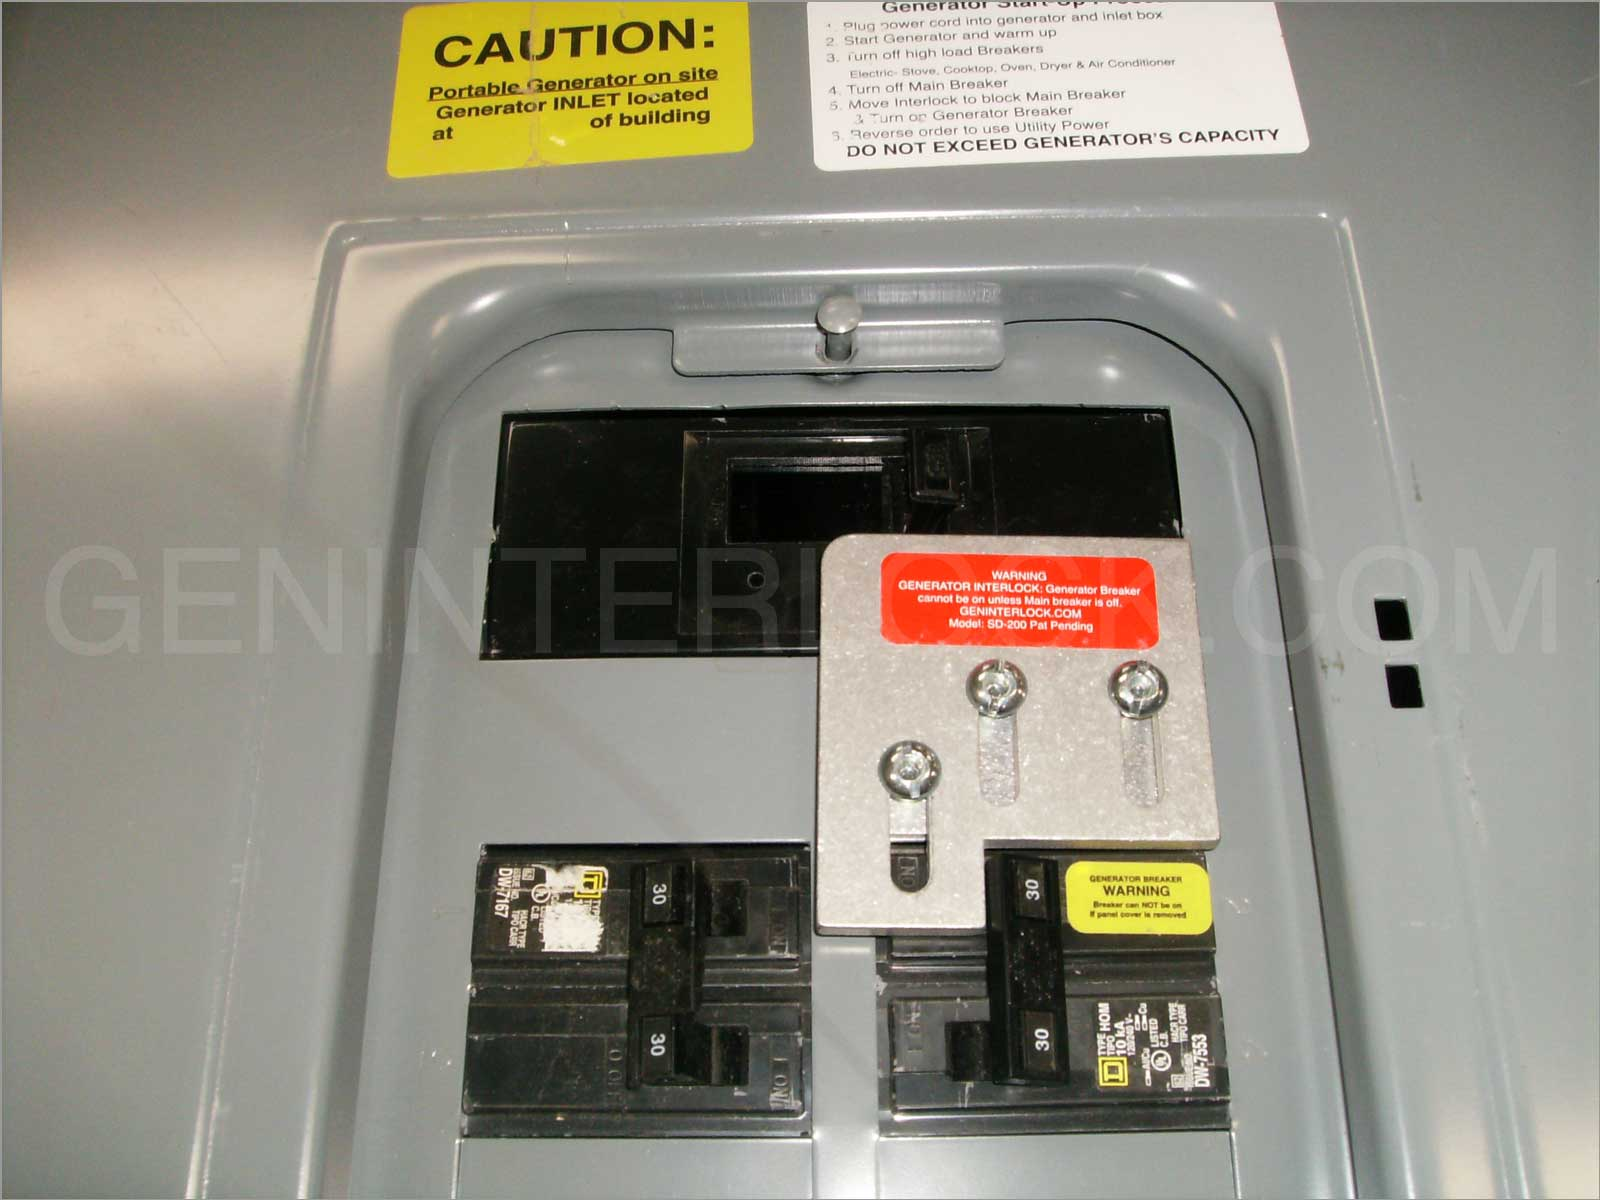 siemens 100 amp panel instructions